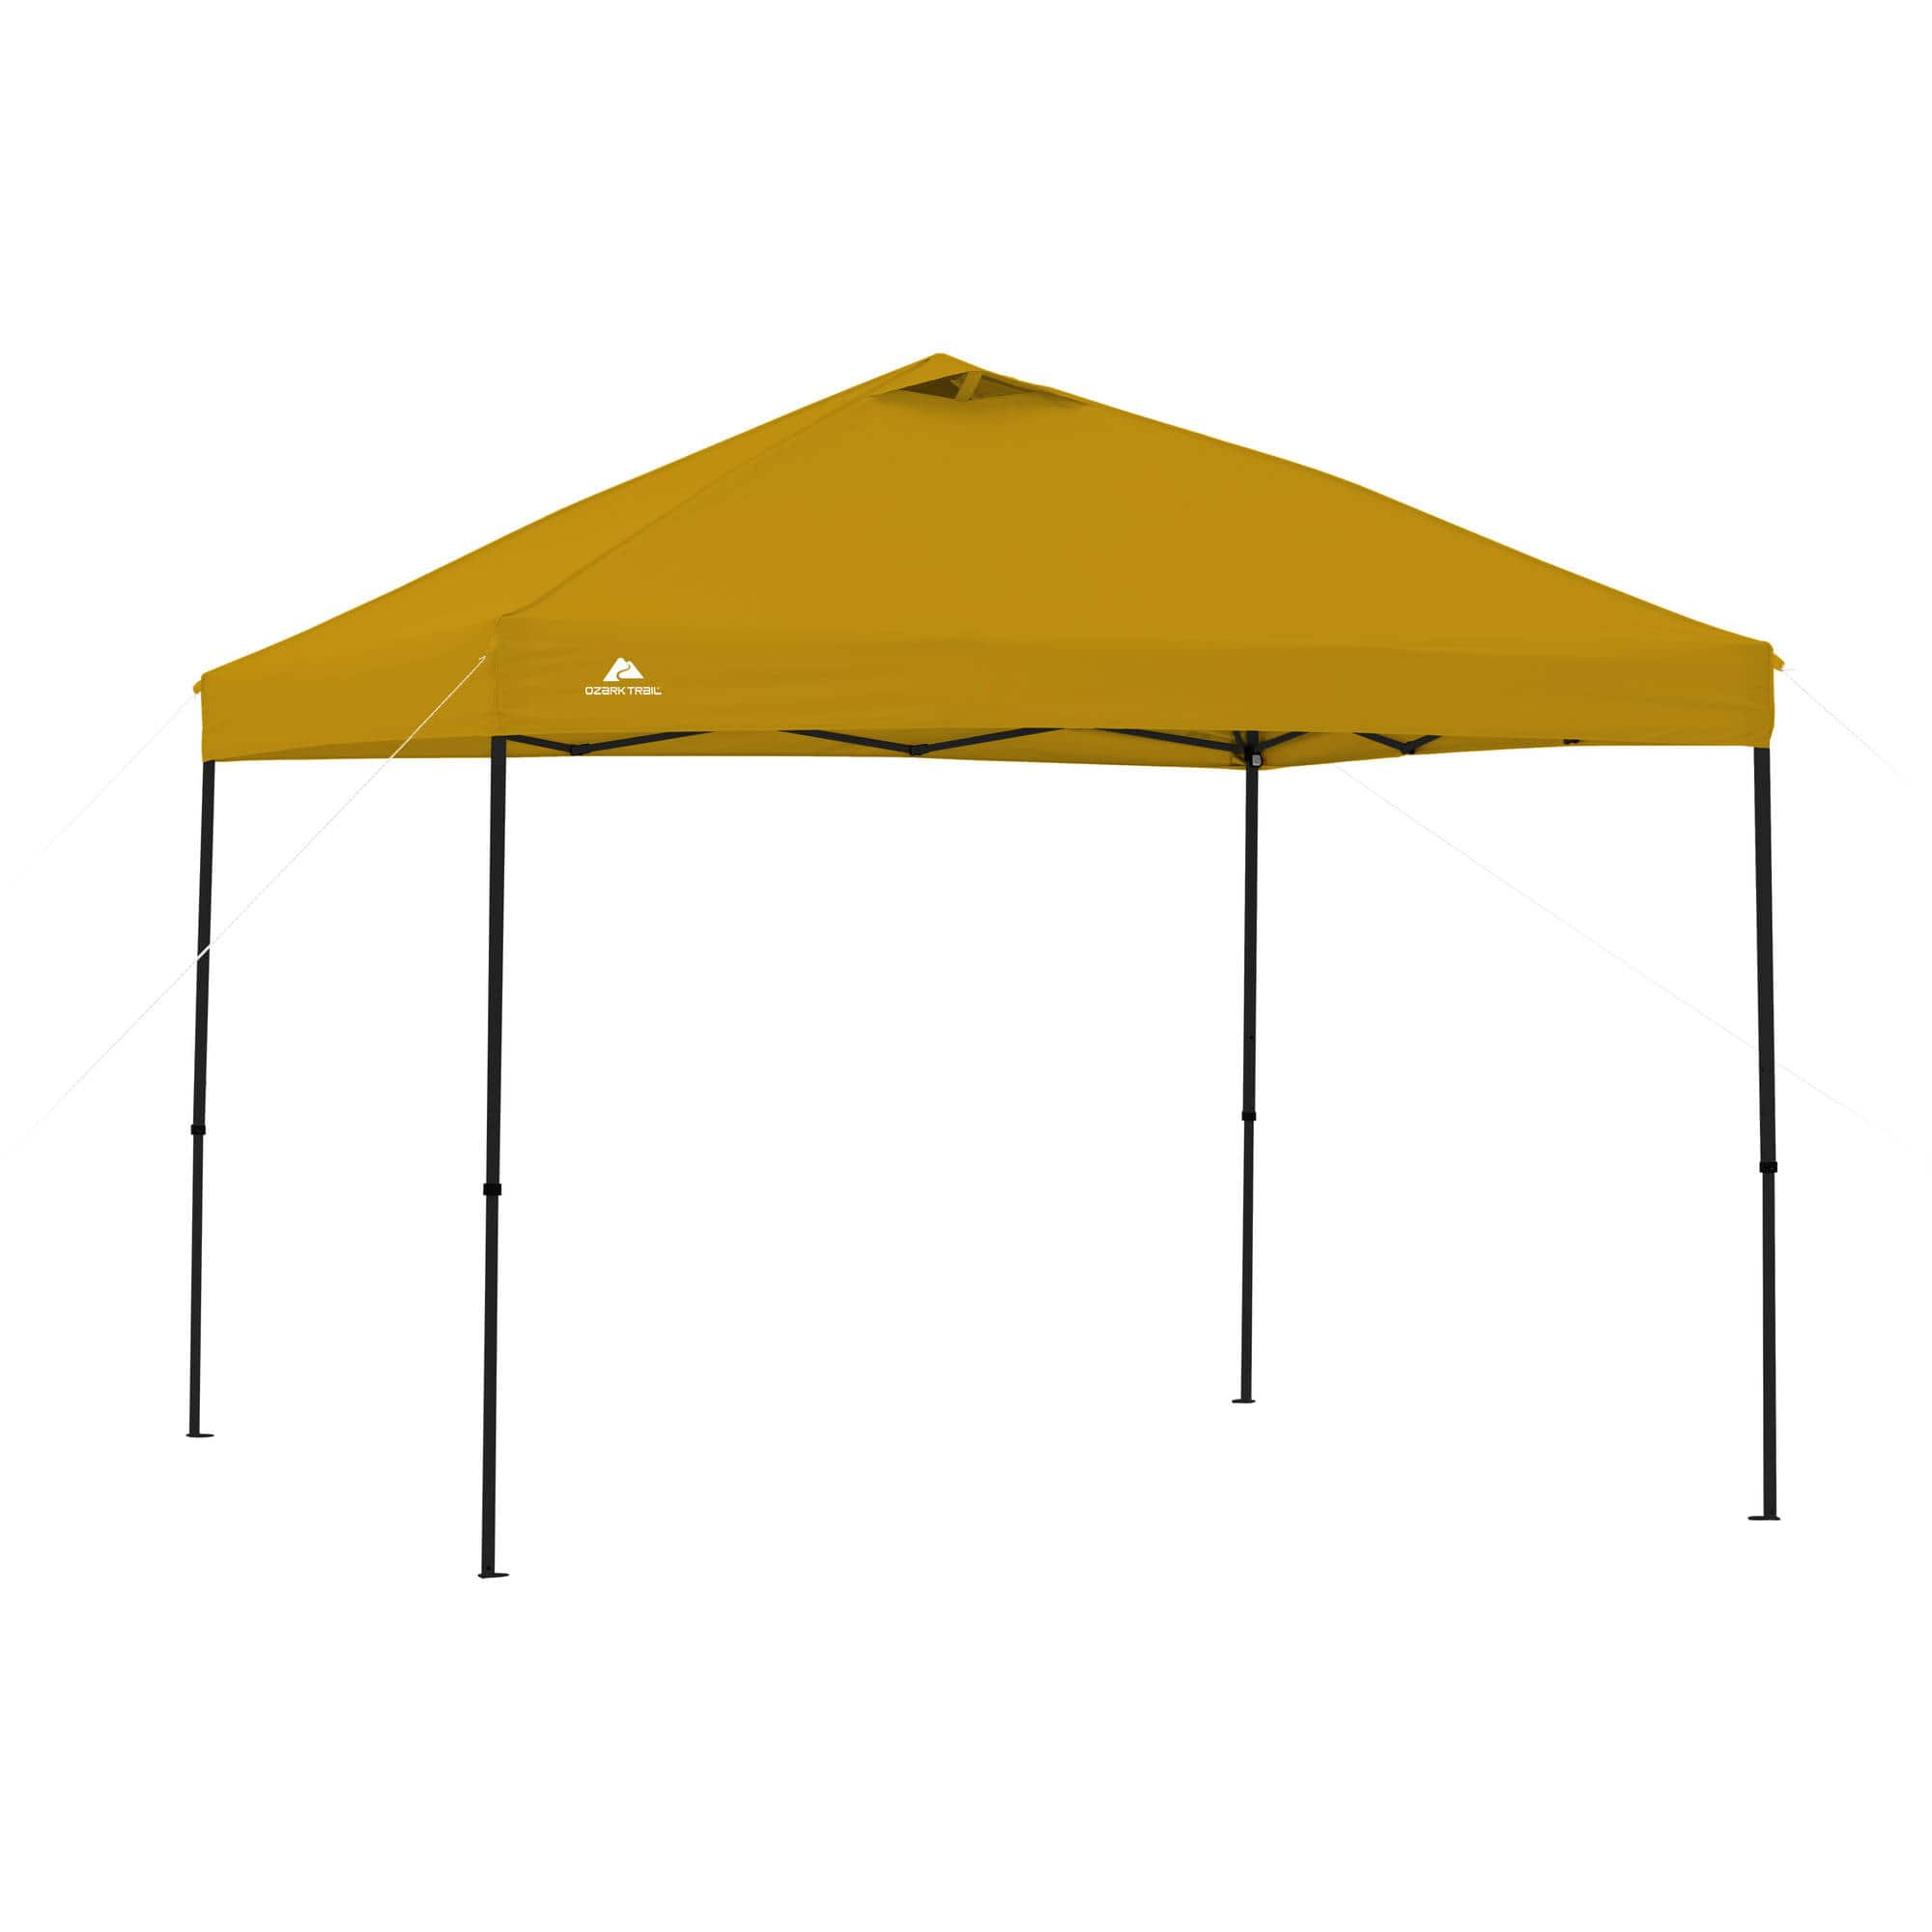 Ozark Trail 10'x10' Instant Gazebo (Yellow or Orange) $38.45 + Free SH